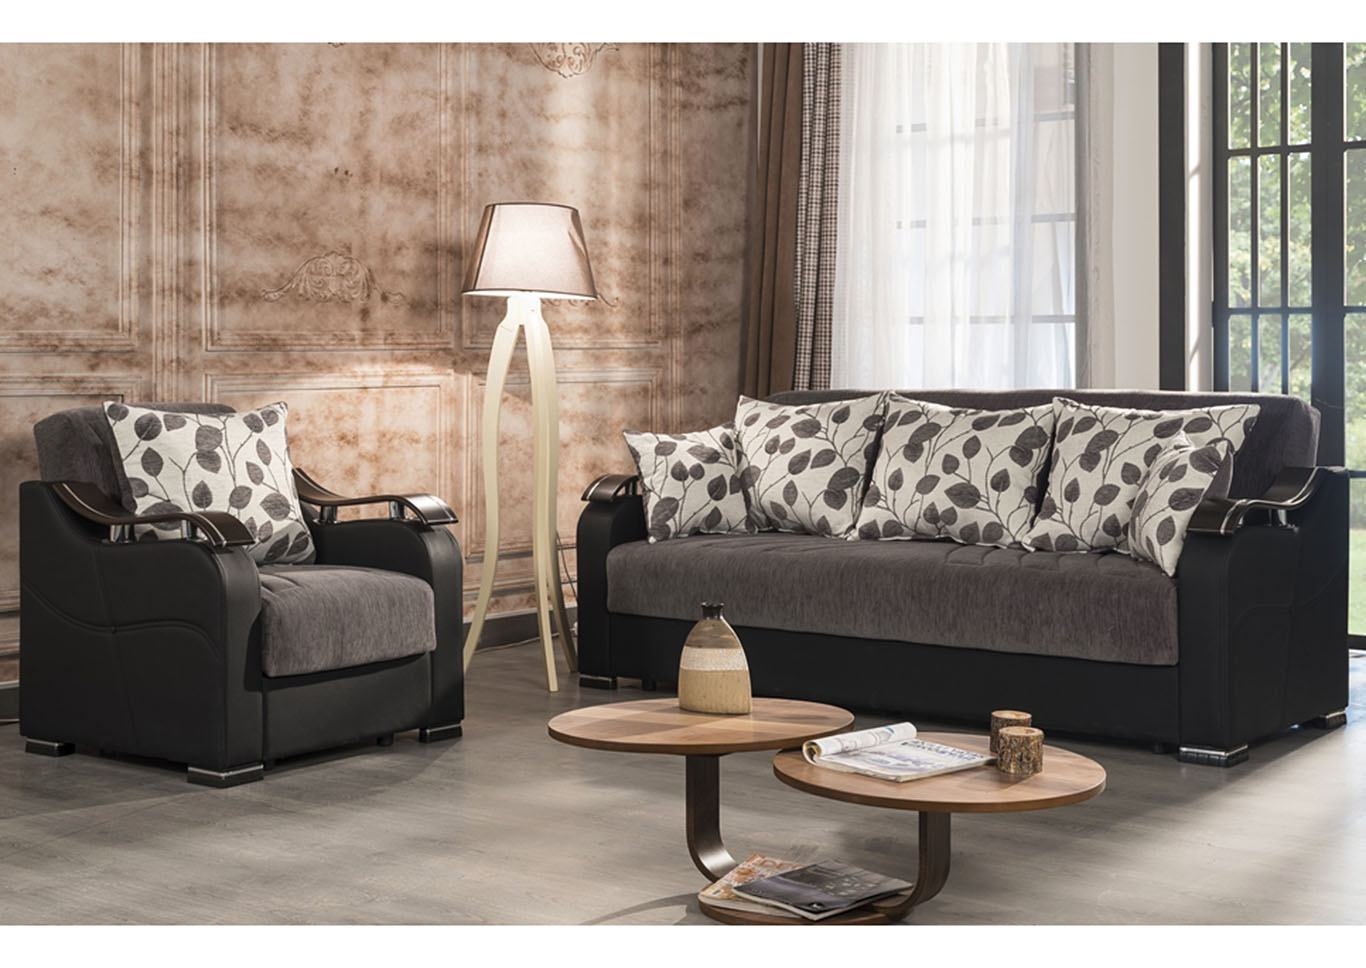 Horizon Gray Chenille Sofabed,CasaMode Functional Furniture